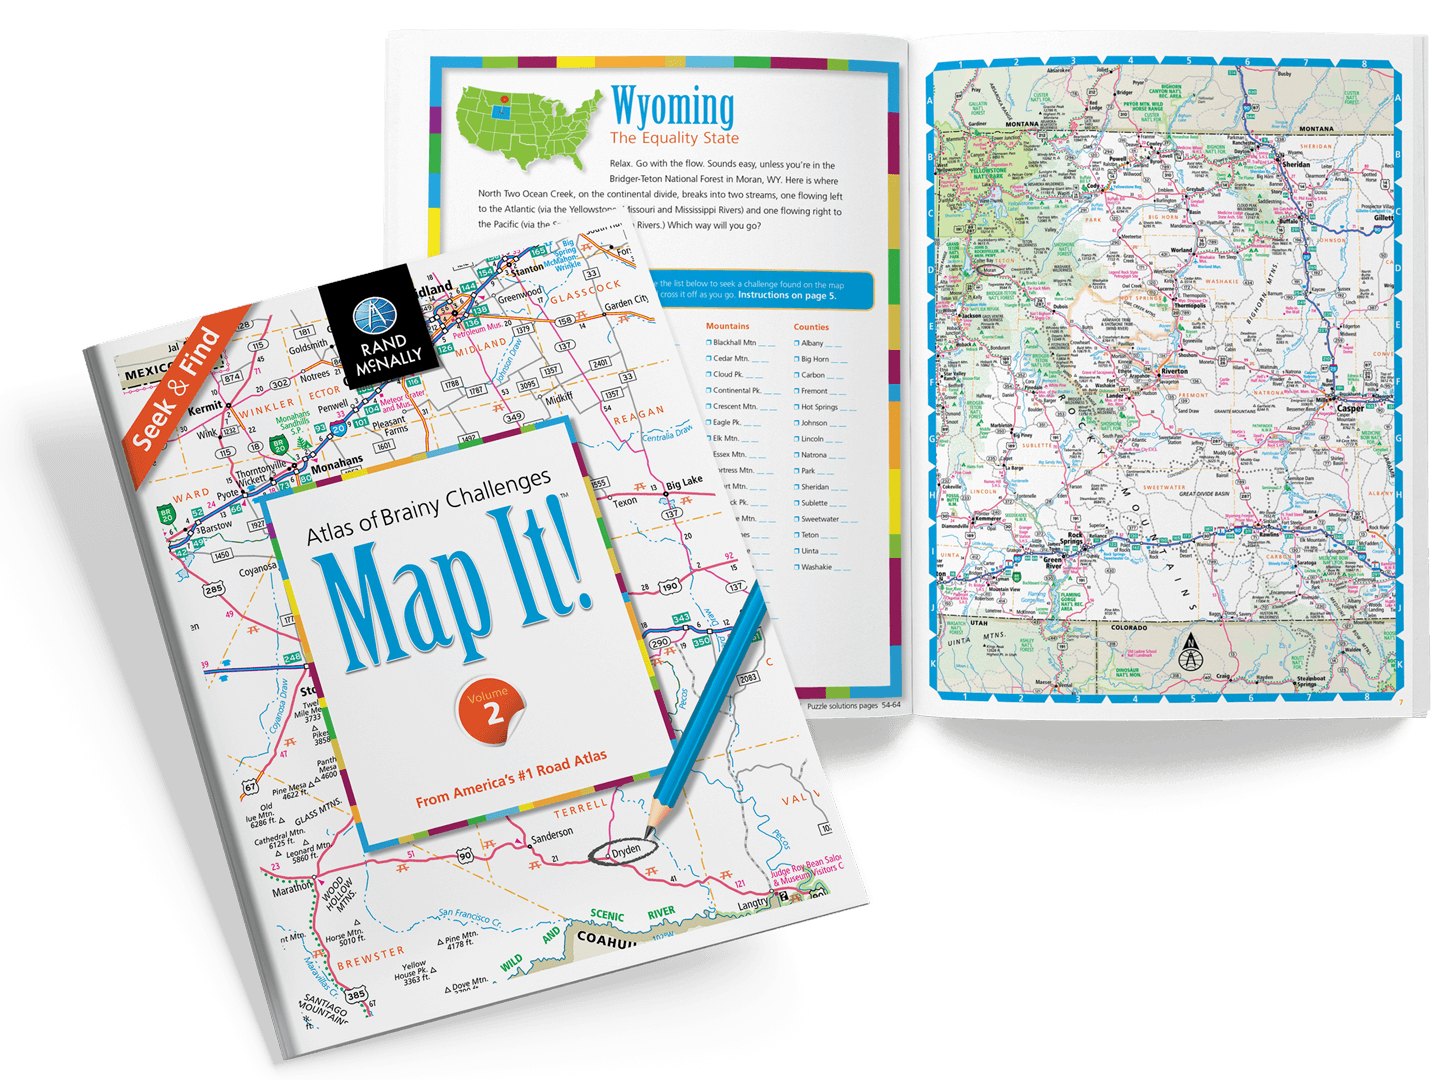 driving directions, map of africa, map of north carolina, map of new york, map of pennsylvania, map of georgia, map of the world, map of china, map of ohio, map of the united states, map of tennessee, map of asia, map of us, map of france, map of texas, map of florida, map of south carolina, map of michigan, map of california, on map it